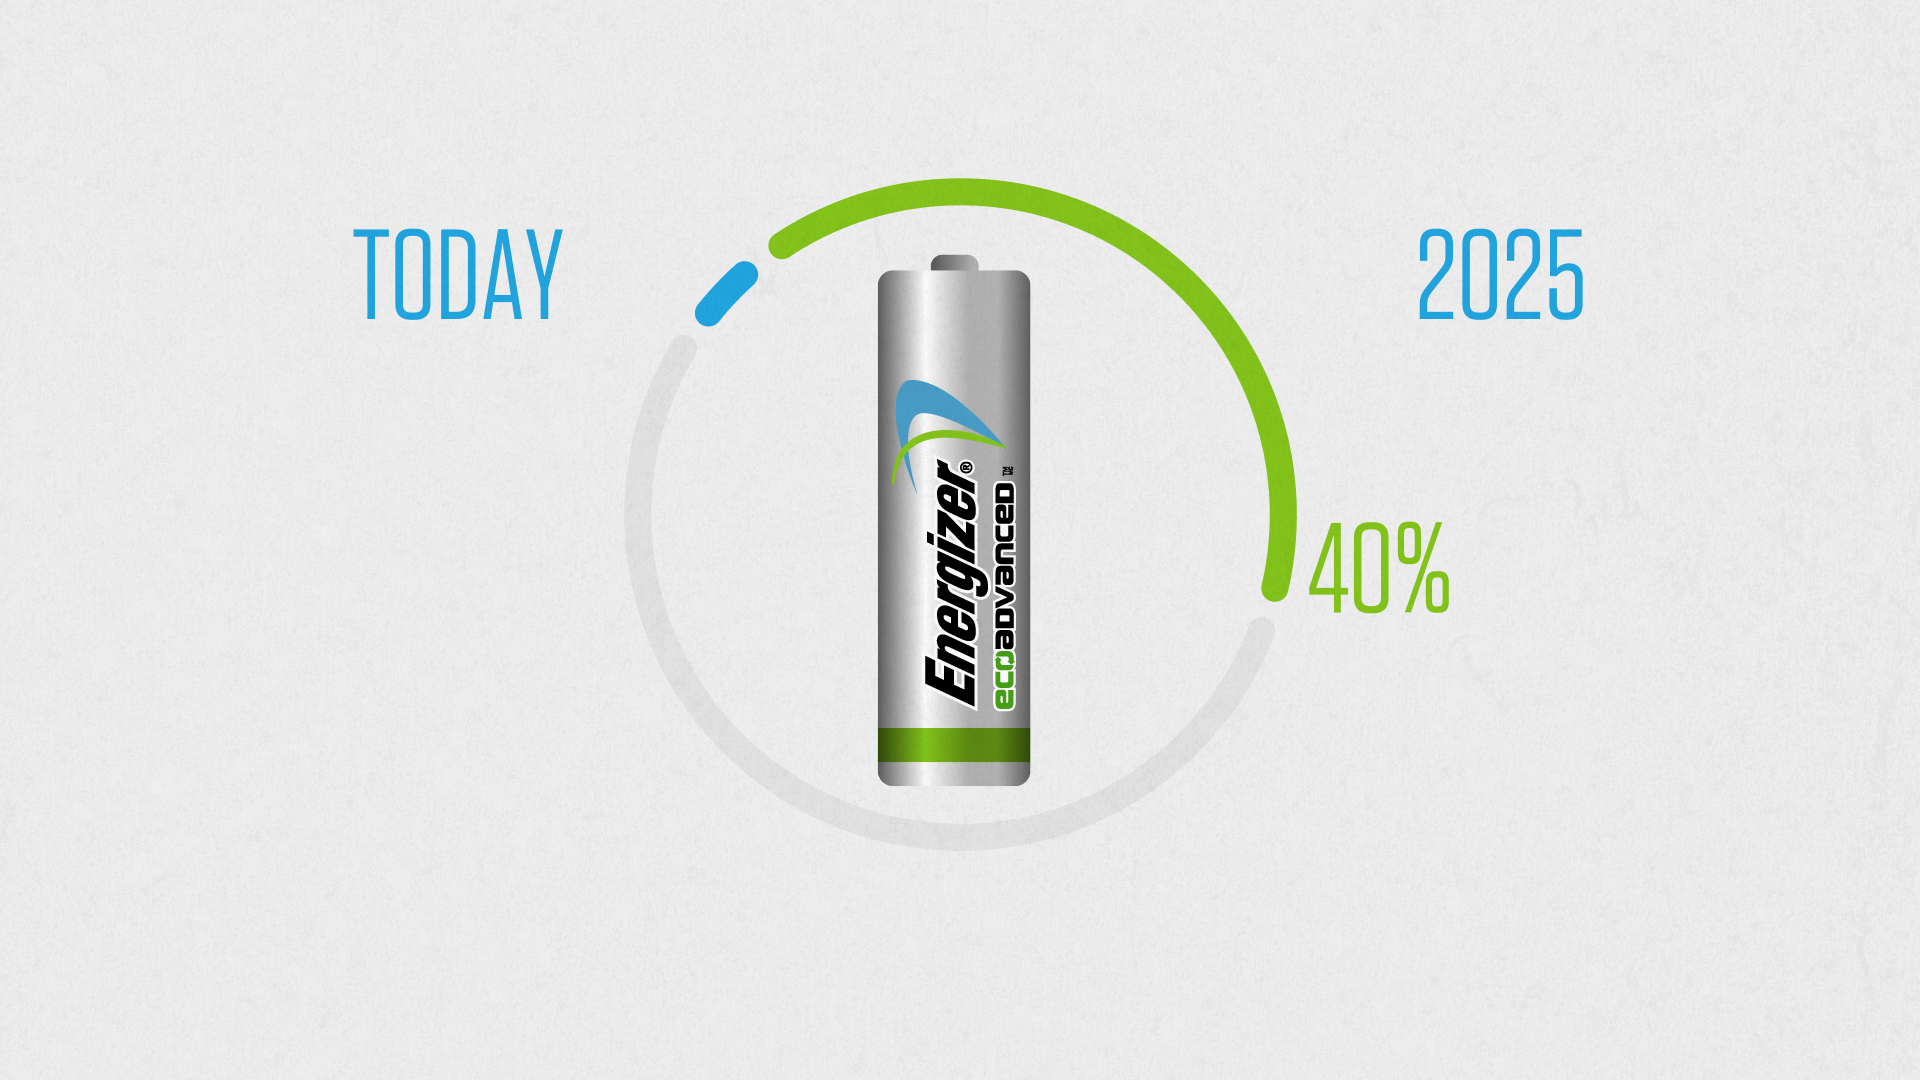 Energizer_Battery_5.8.2015_01713